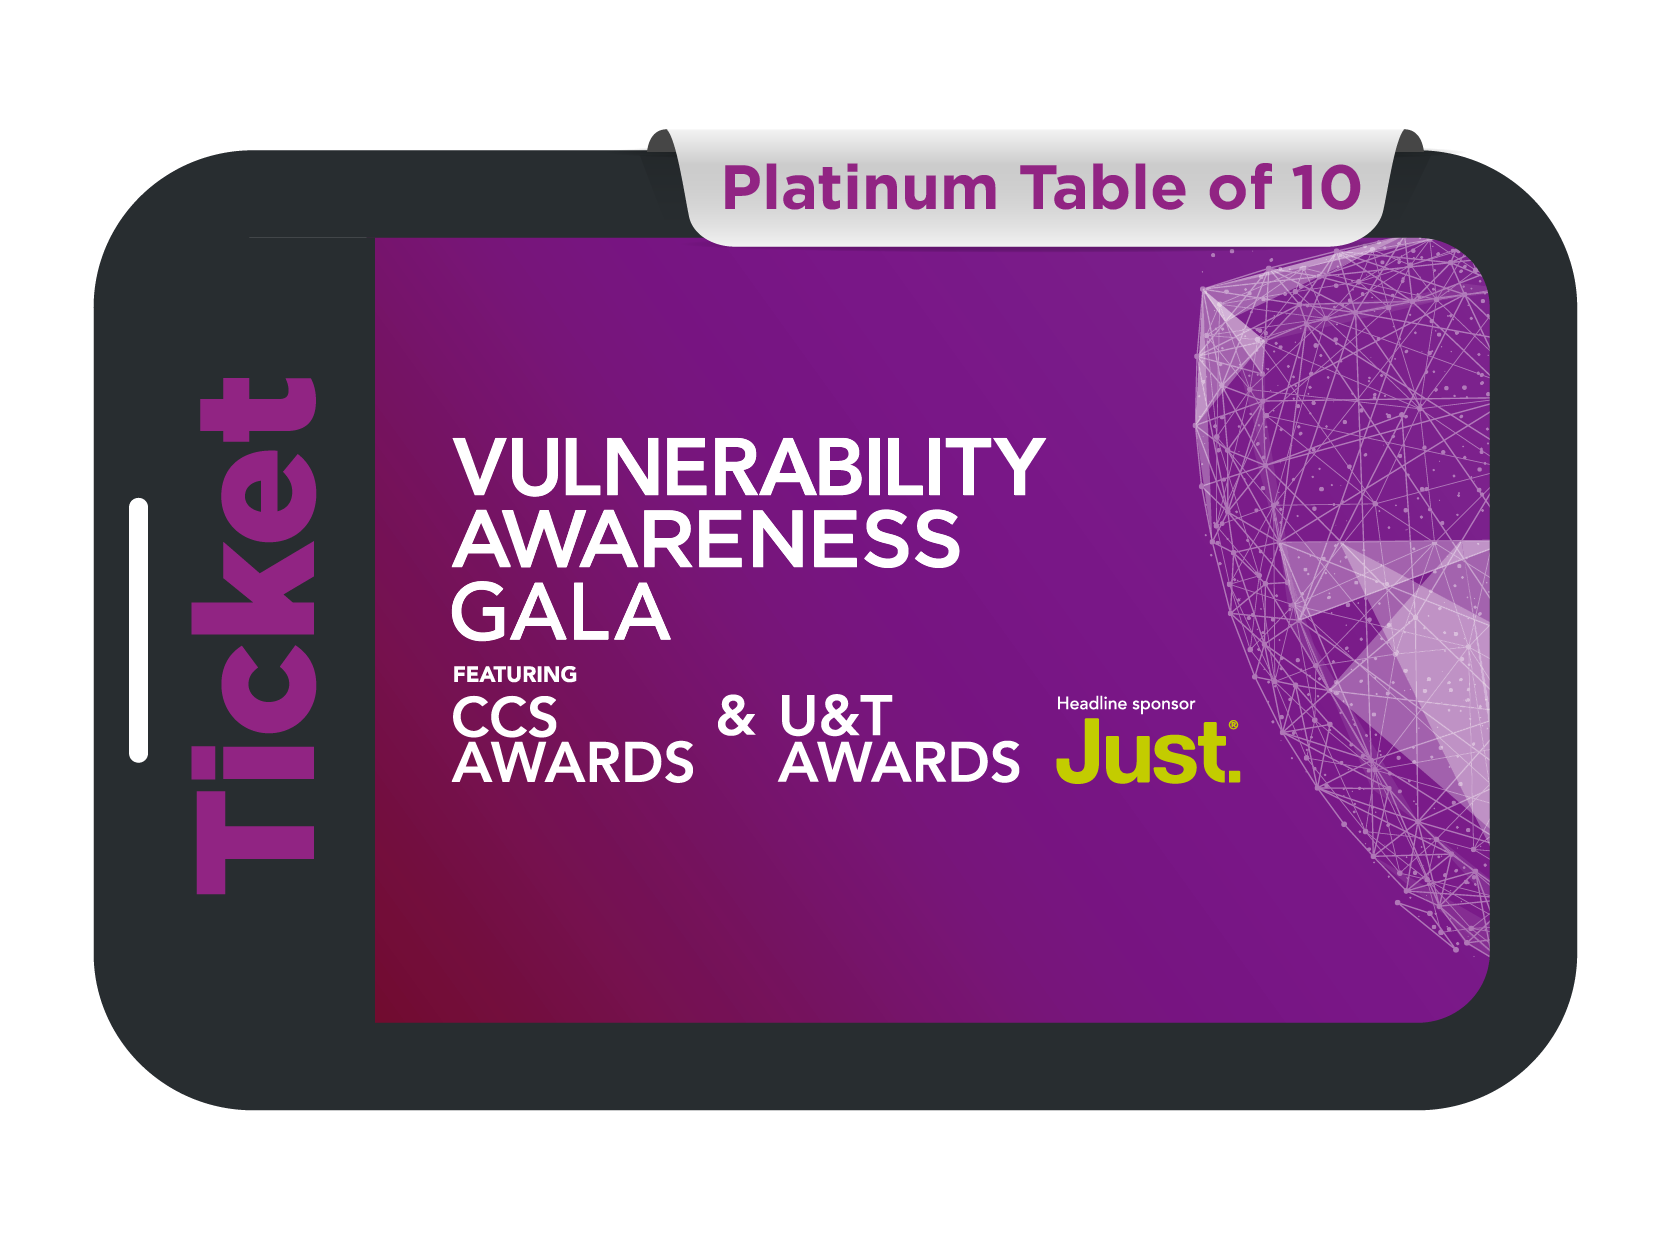 Platinum Table of 10 - Vulnerability Awareness Gala feat. CCS and U&T Awards 2021